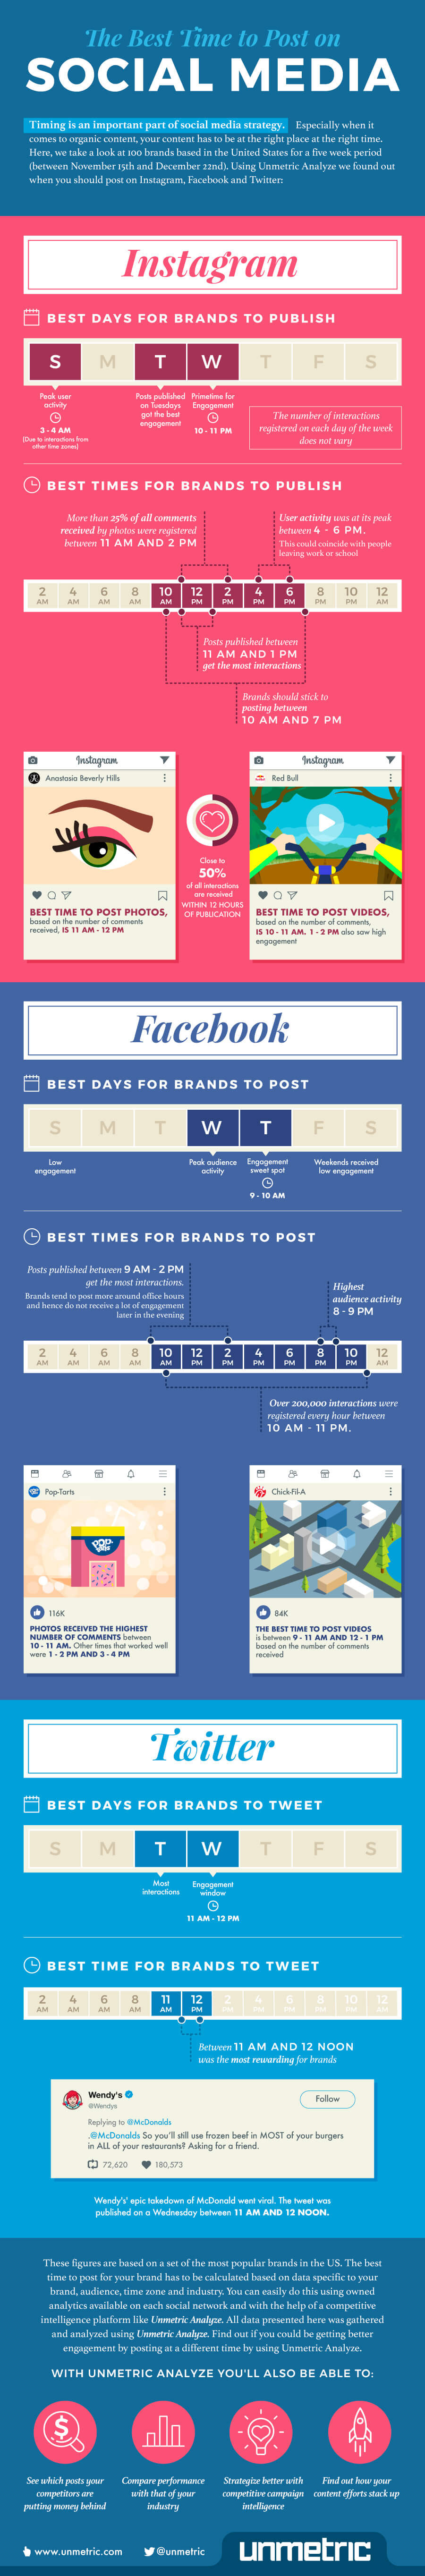 Infographic_best-time-to-post-on-social-media